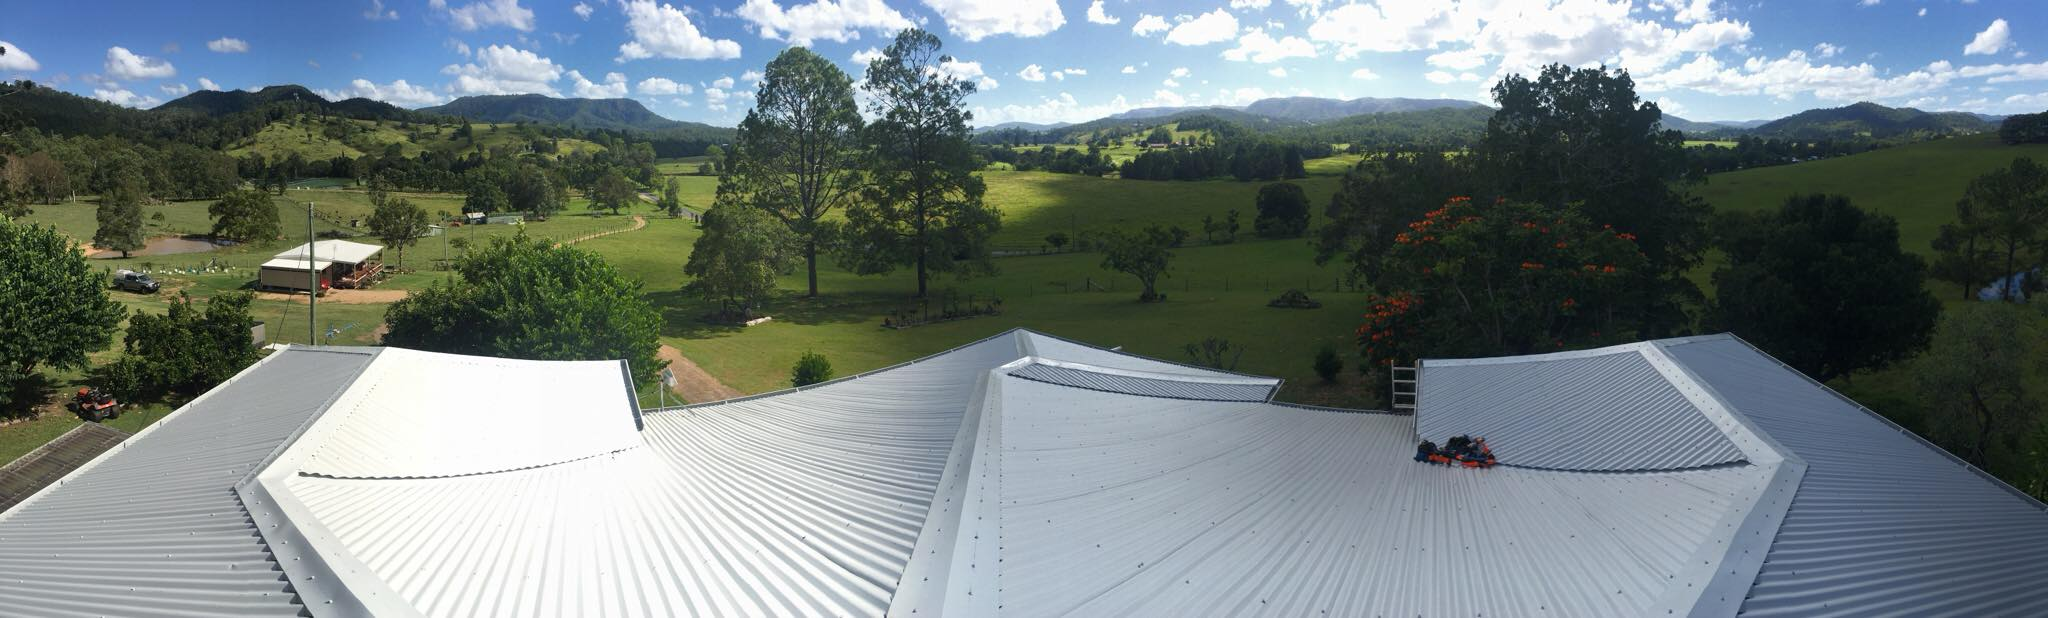 Roof Restoration Gold Coast Image 49   Professional Plumbing & Roofing